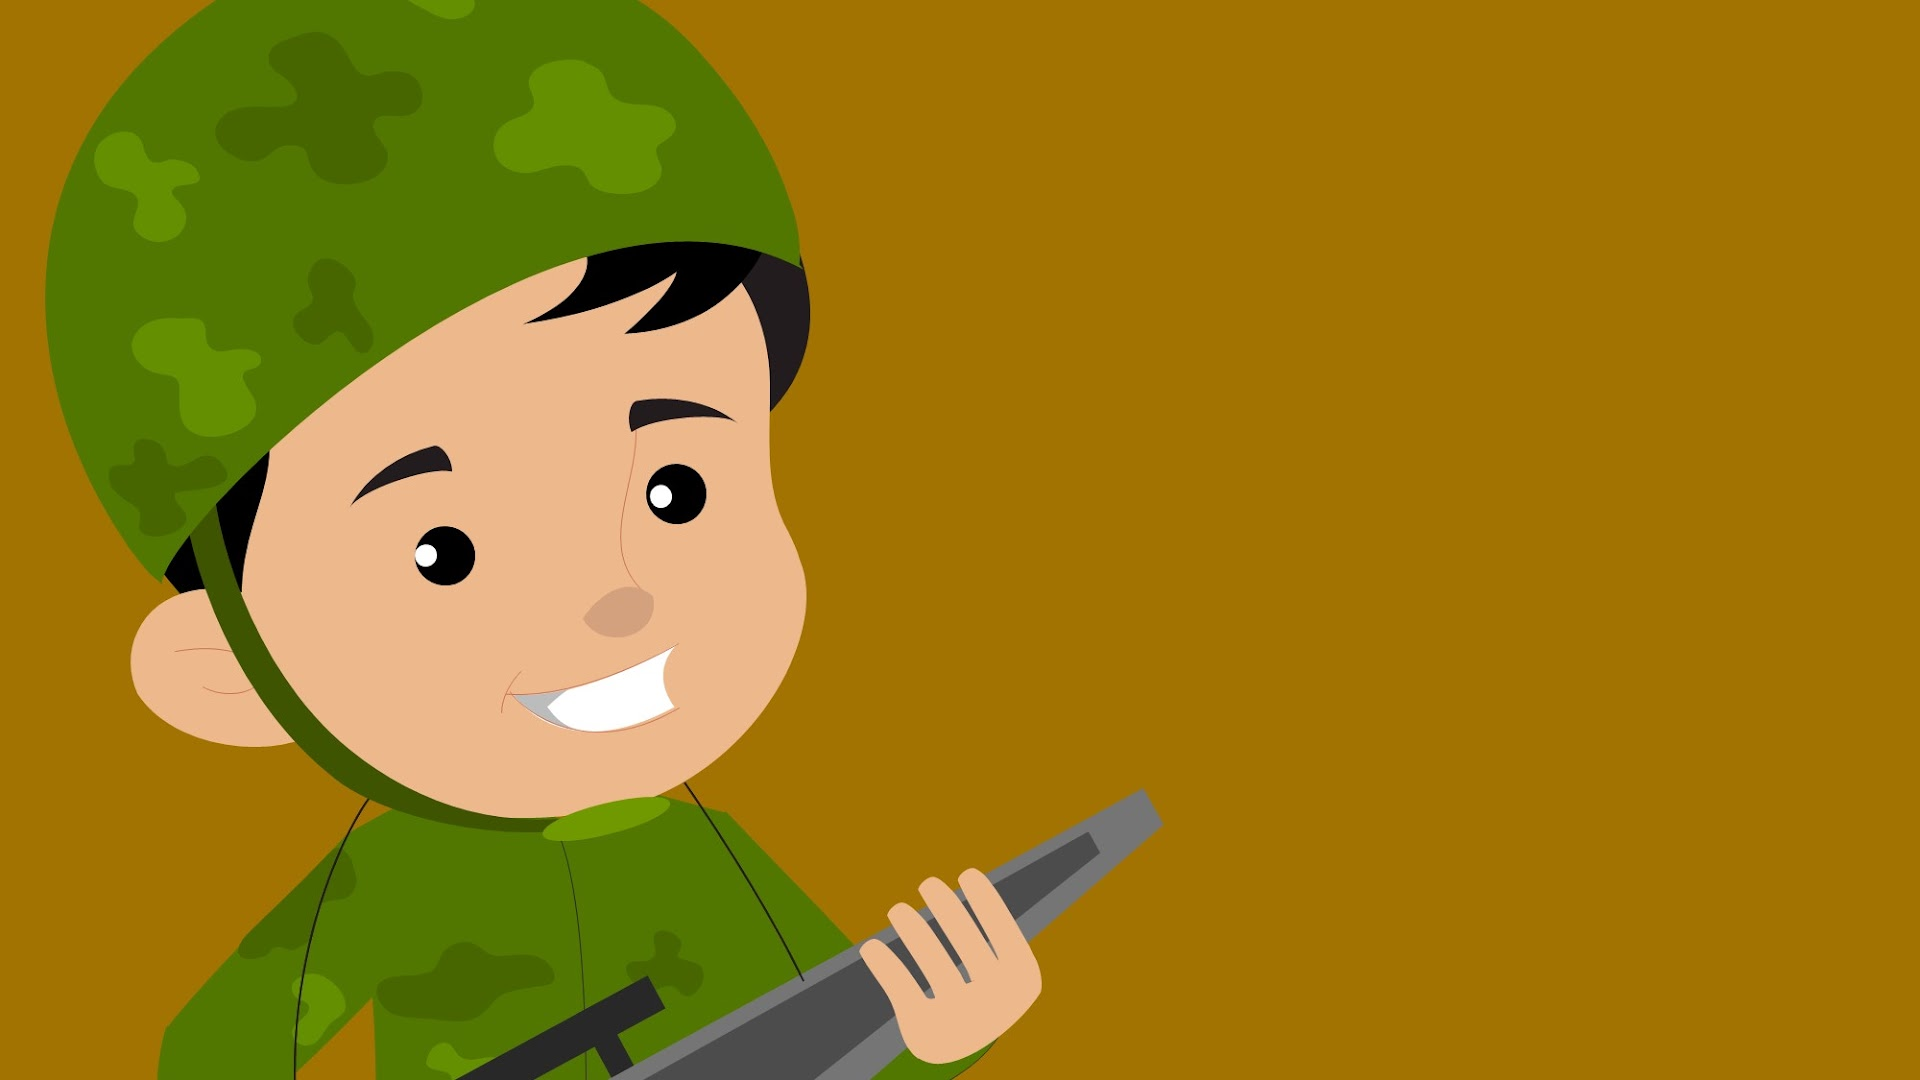 Cartoon Army Man Background for Presentations